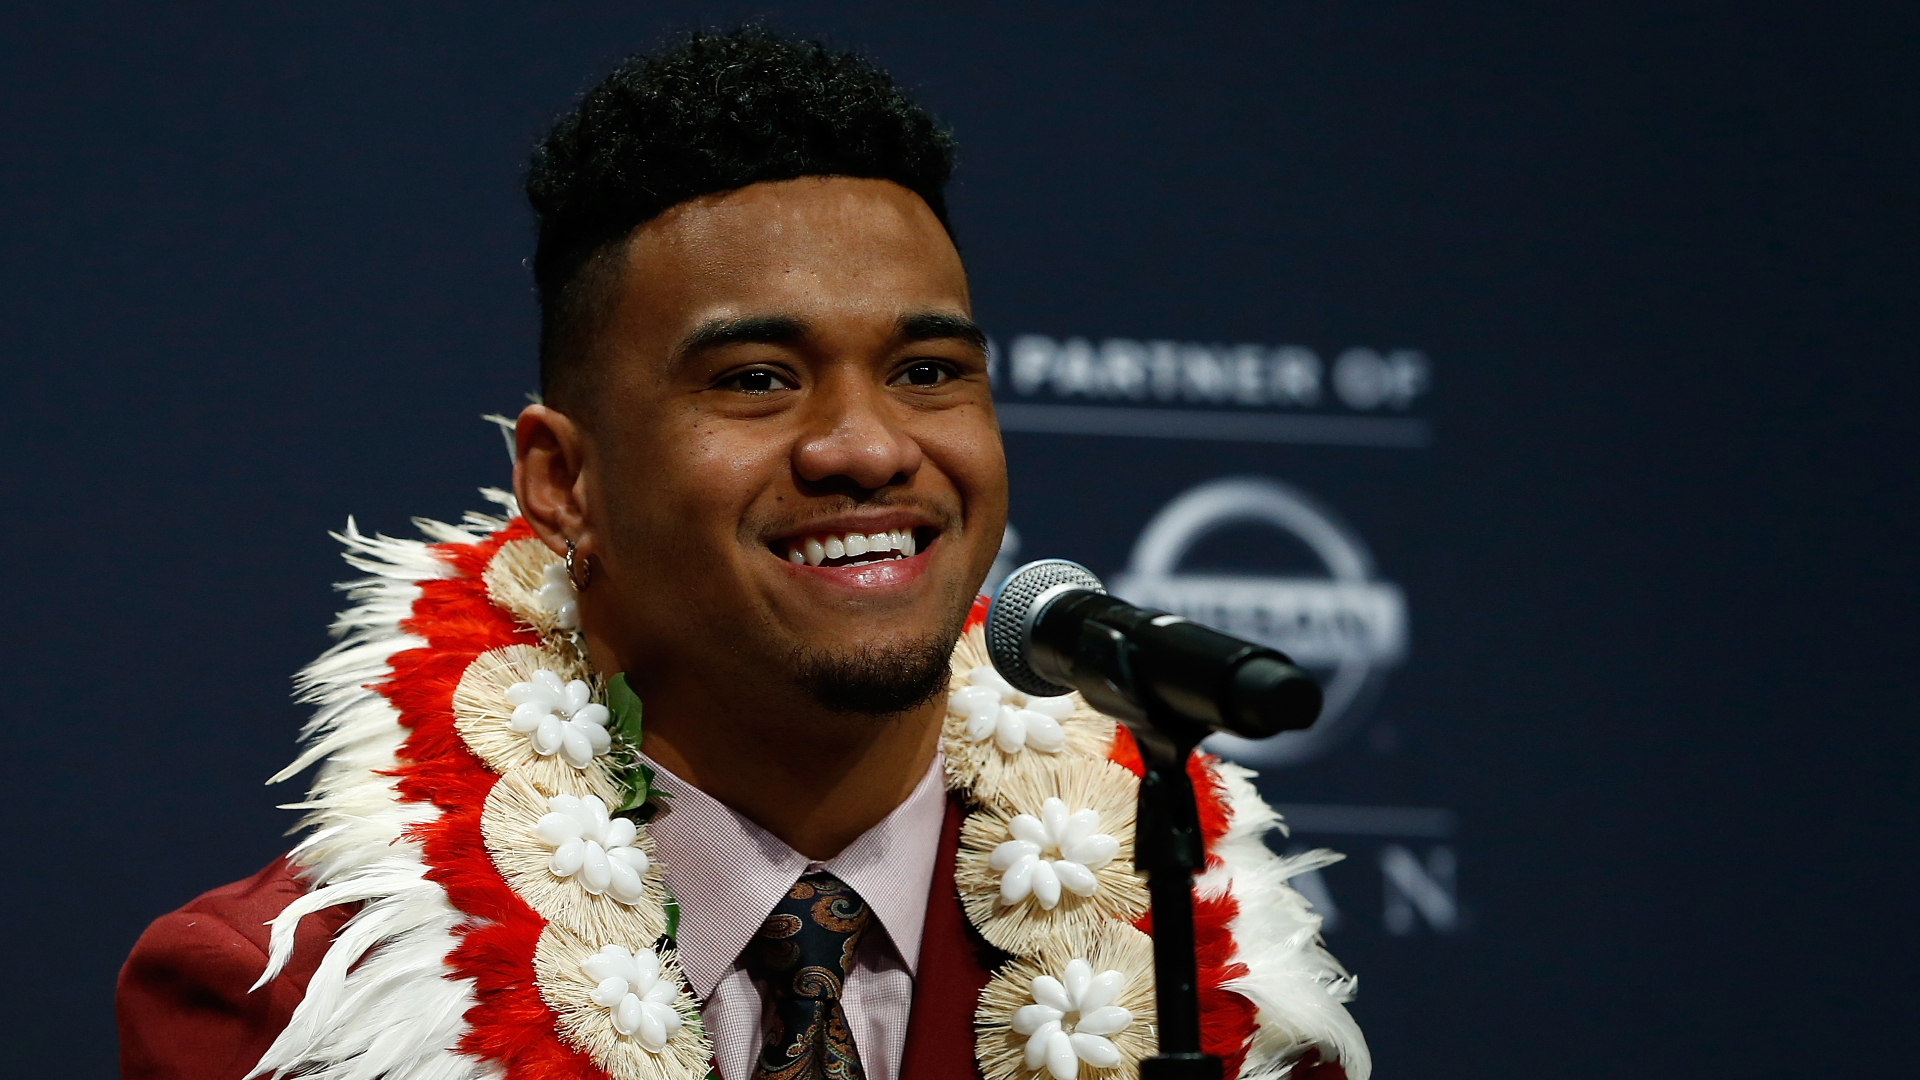 Tua Tagovailoa's No. 1 jersey soon to be a Dolphins first 1